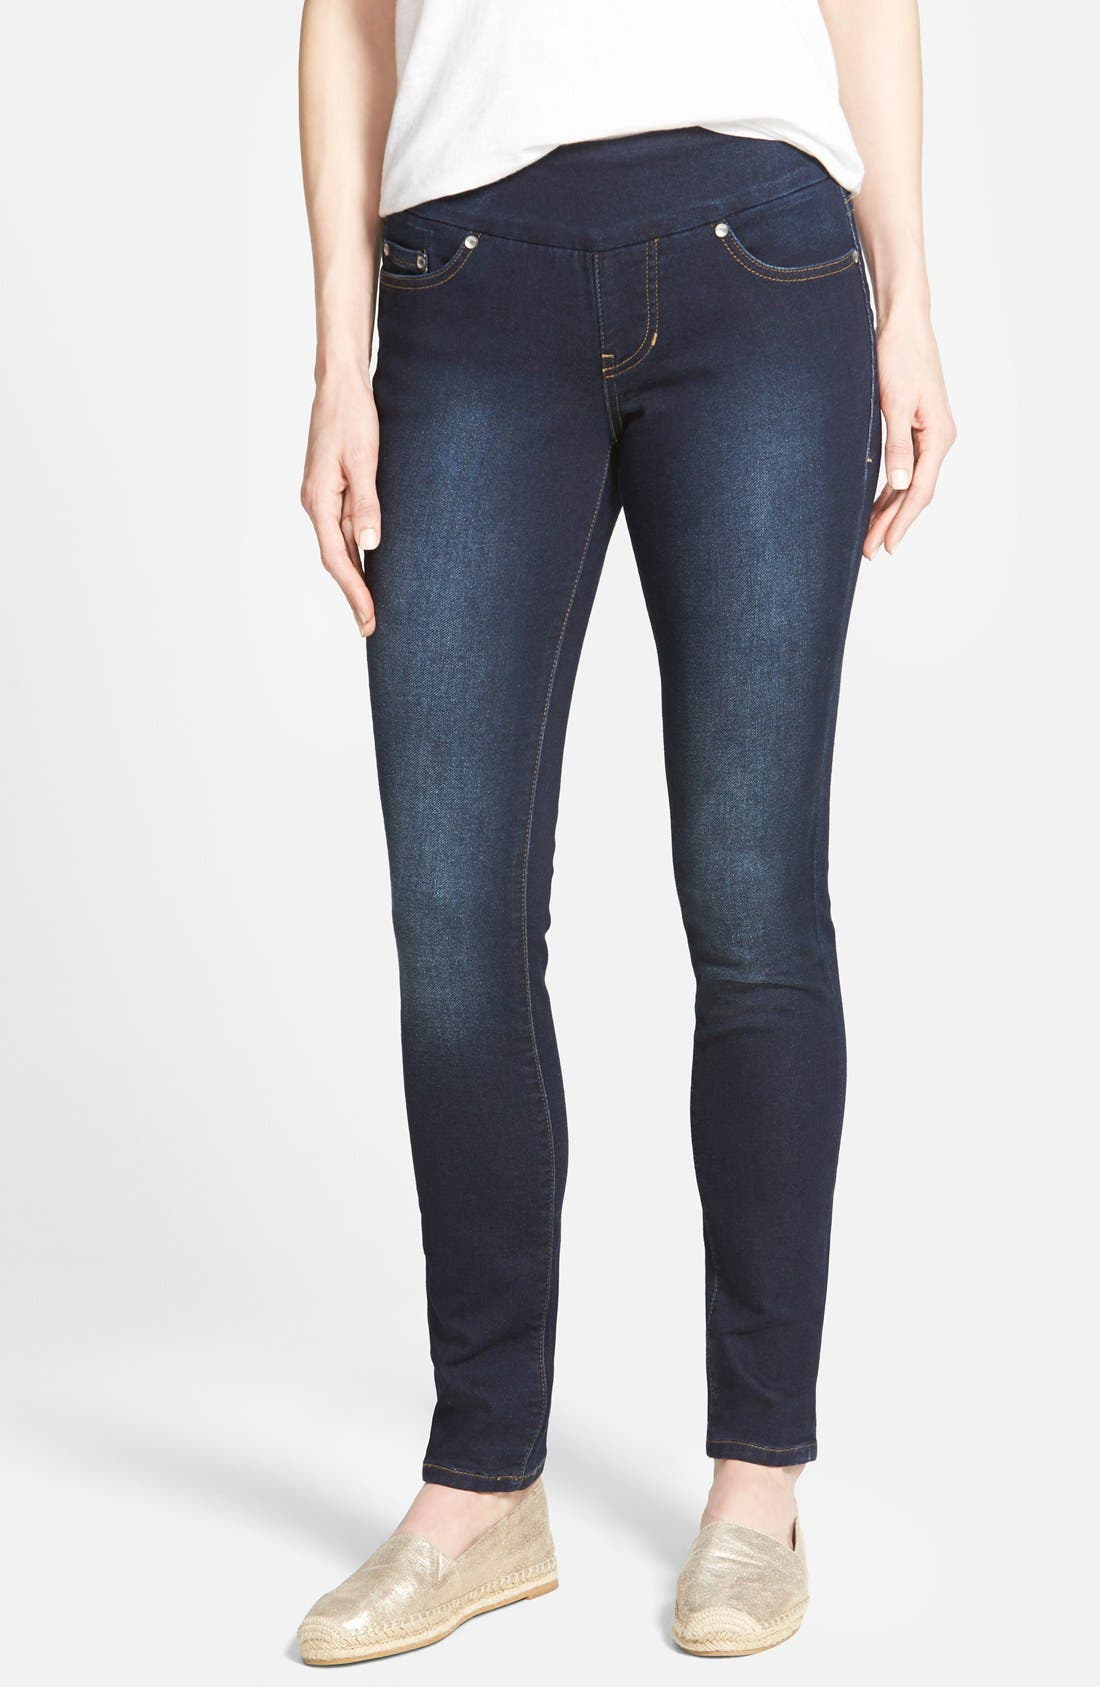 Alternate Image 1 Selected - Jag Jeans 'Nora' Pull-On Stretch Knit Skinny Jeans (Dark Whale) (Petite)